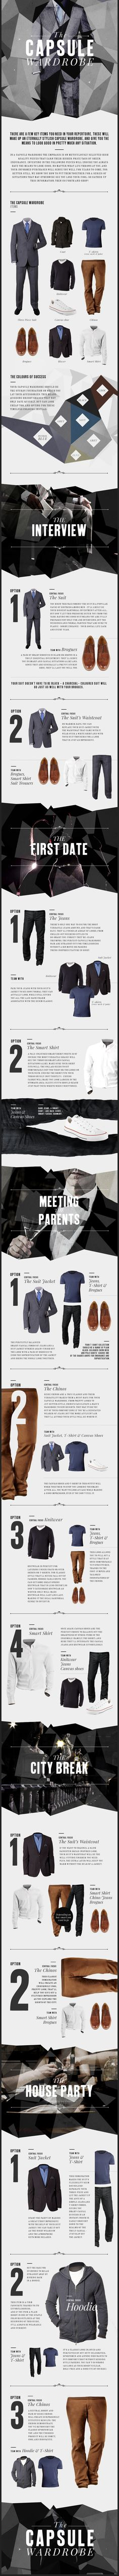 Capsule Wardrobe mens fashion. #essentials.